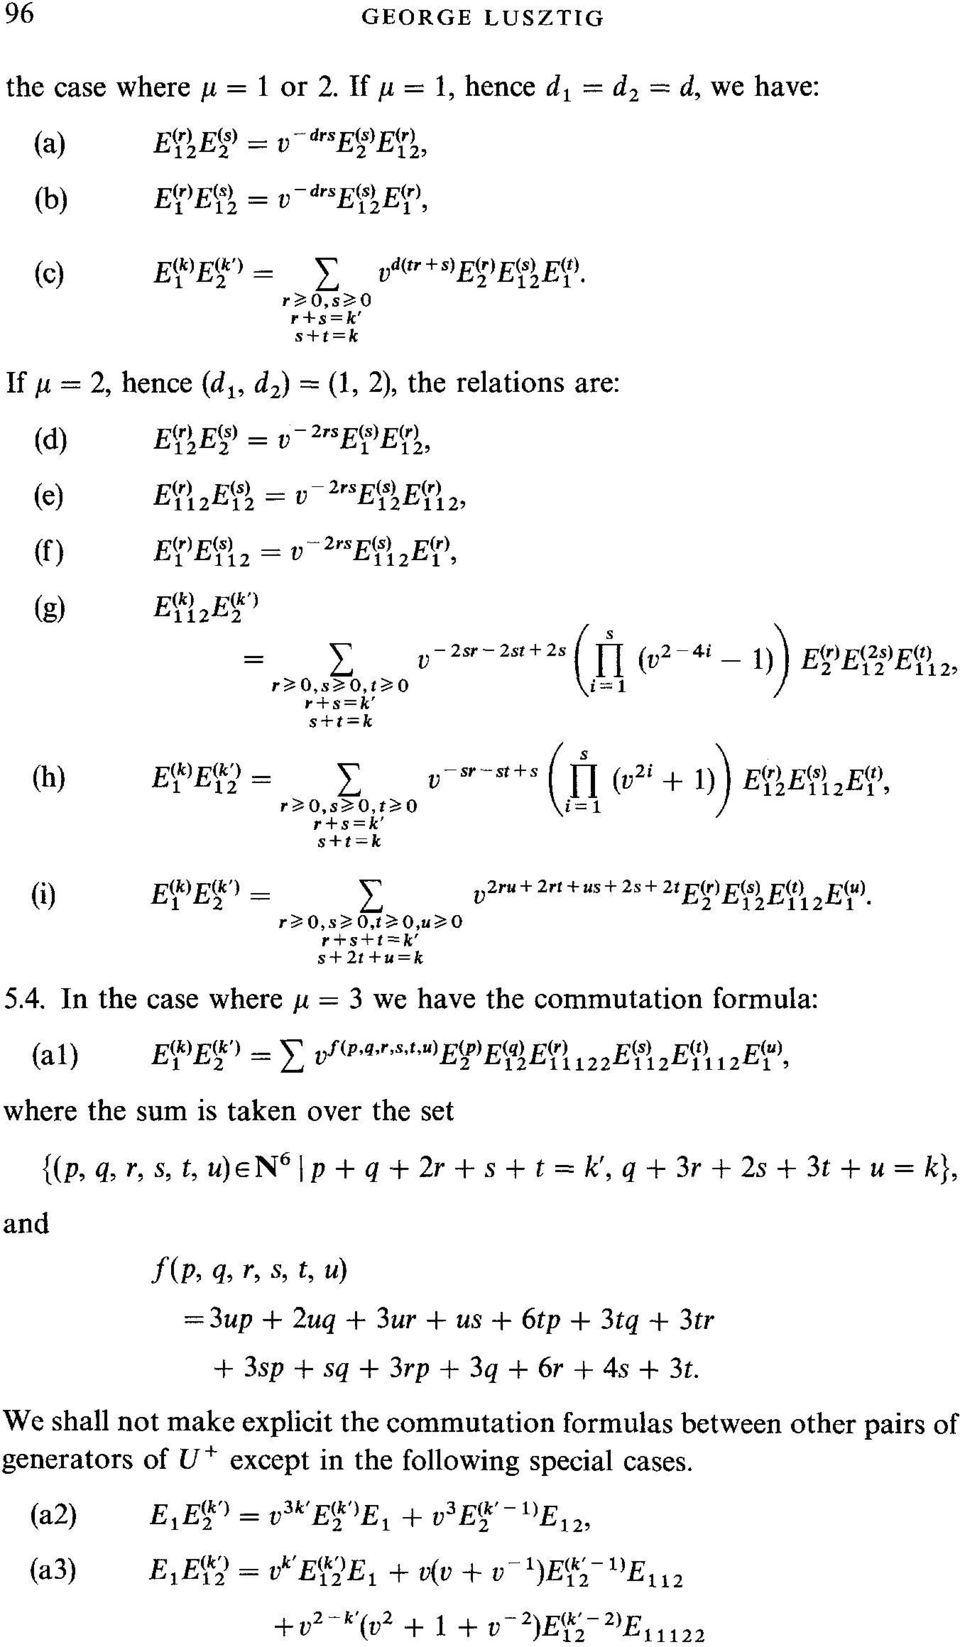 "d2) --- (1, 2), the relations are: (d) ~12~2~(') ~(~) = v- 2""SE(I~)E([), (e) ~(,) 17(s),, 2rs]~?"